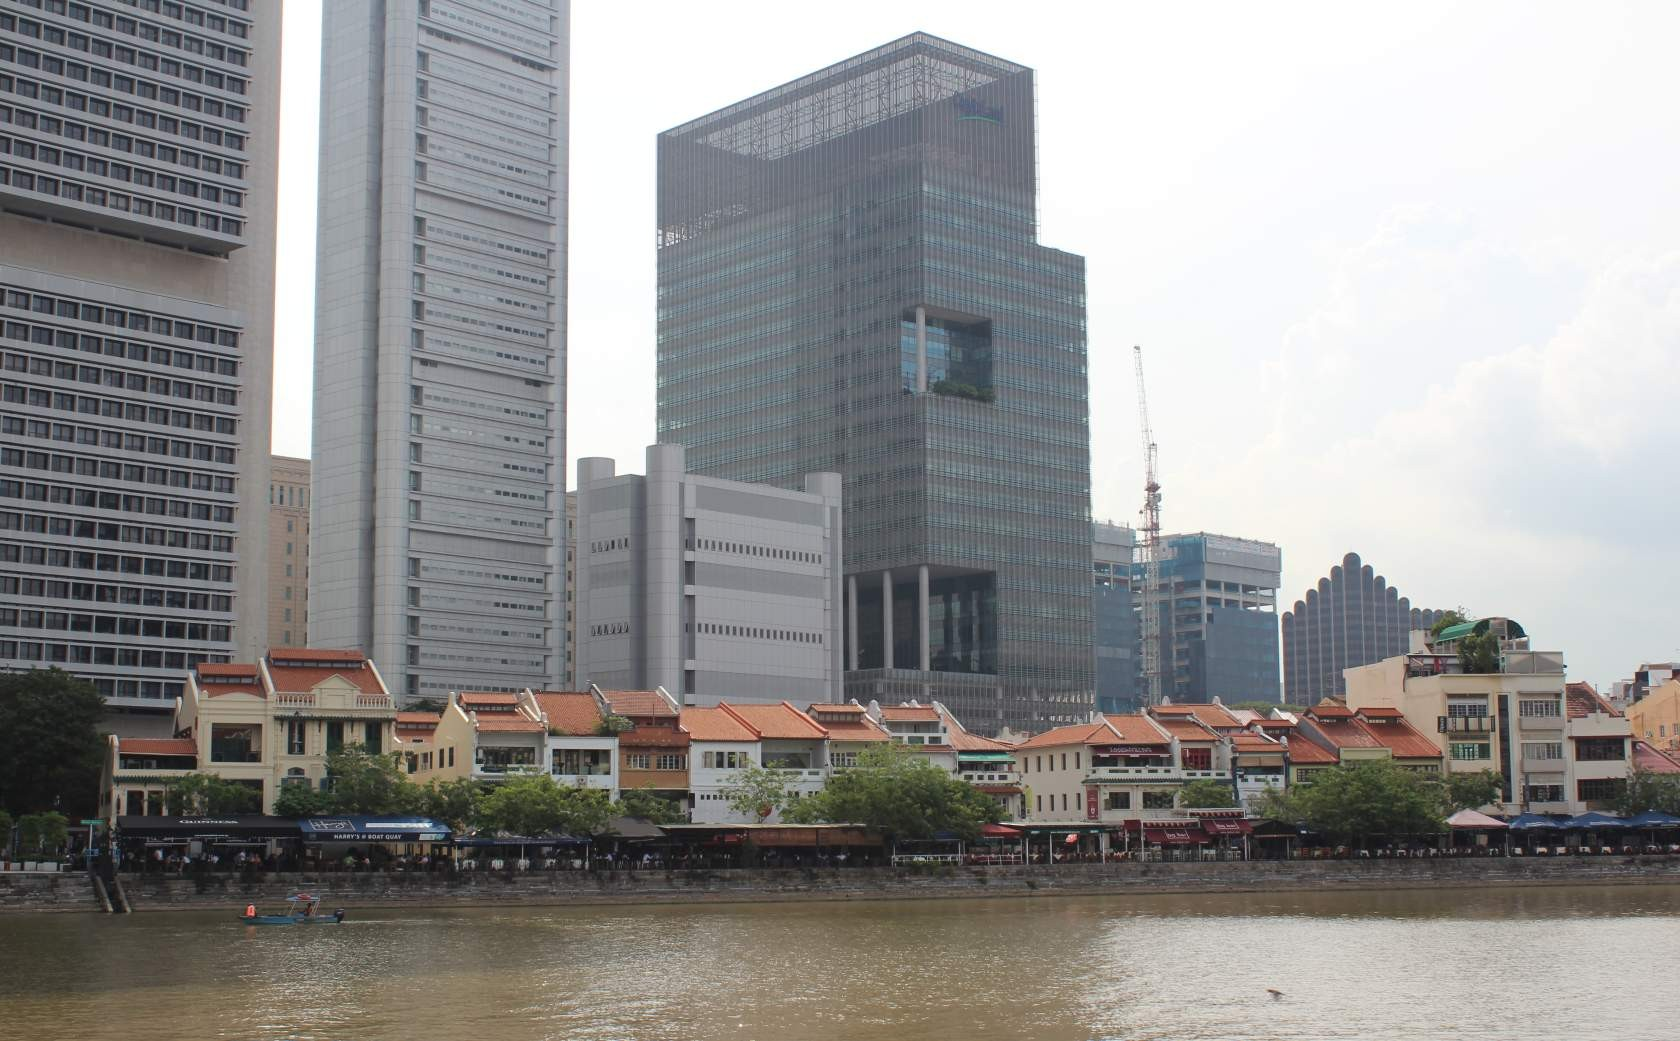 Boat Quay vor dem Central Business District (CBD) I